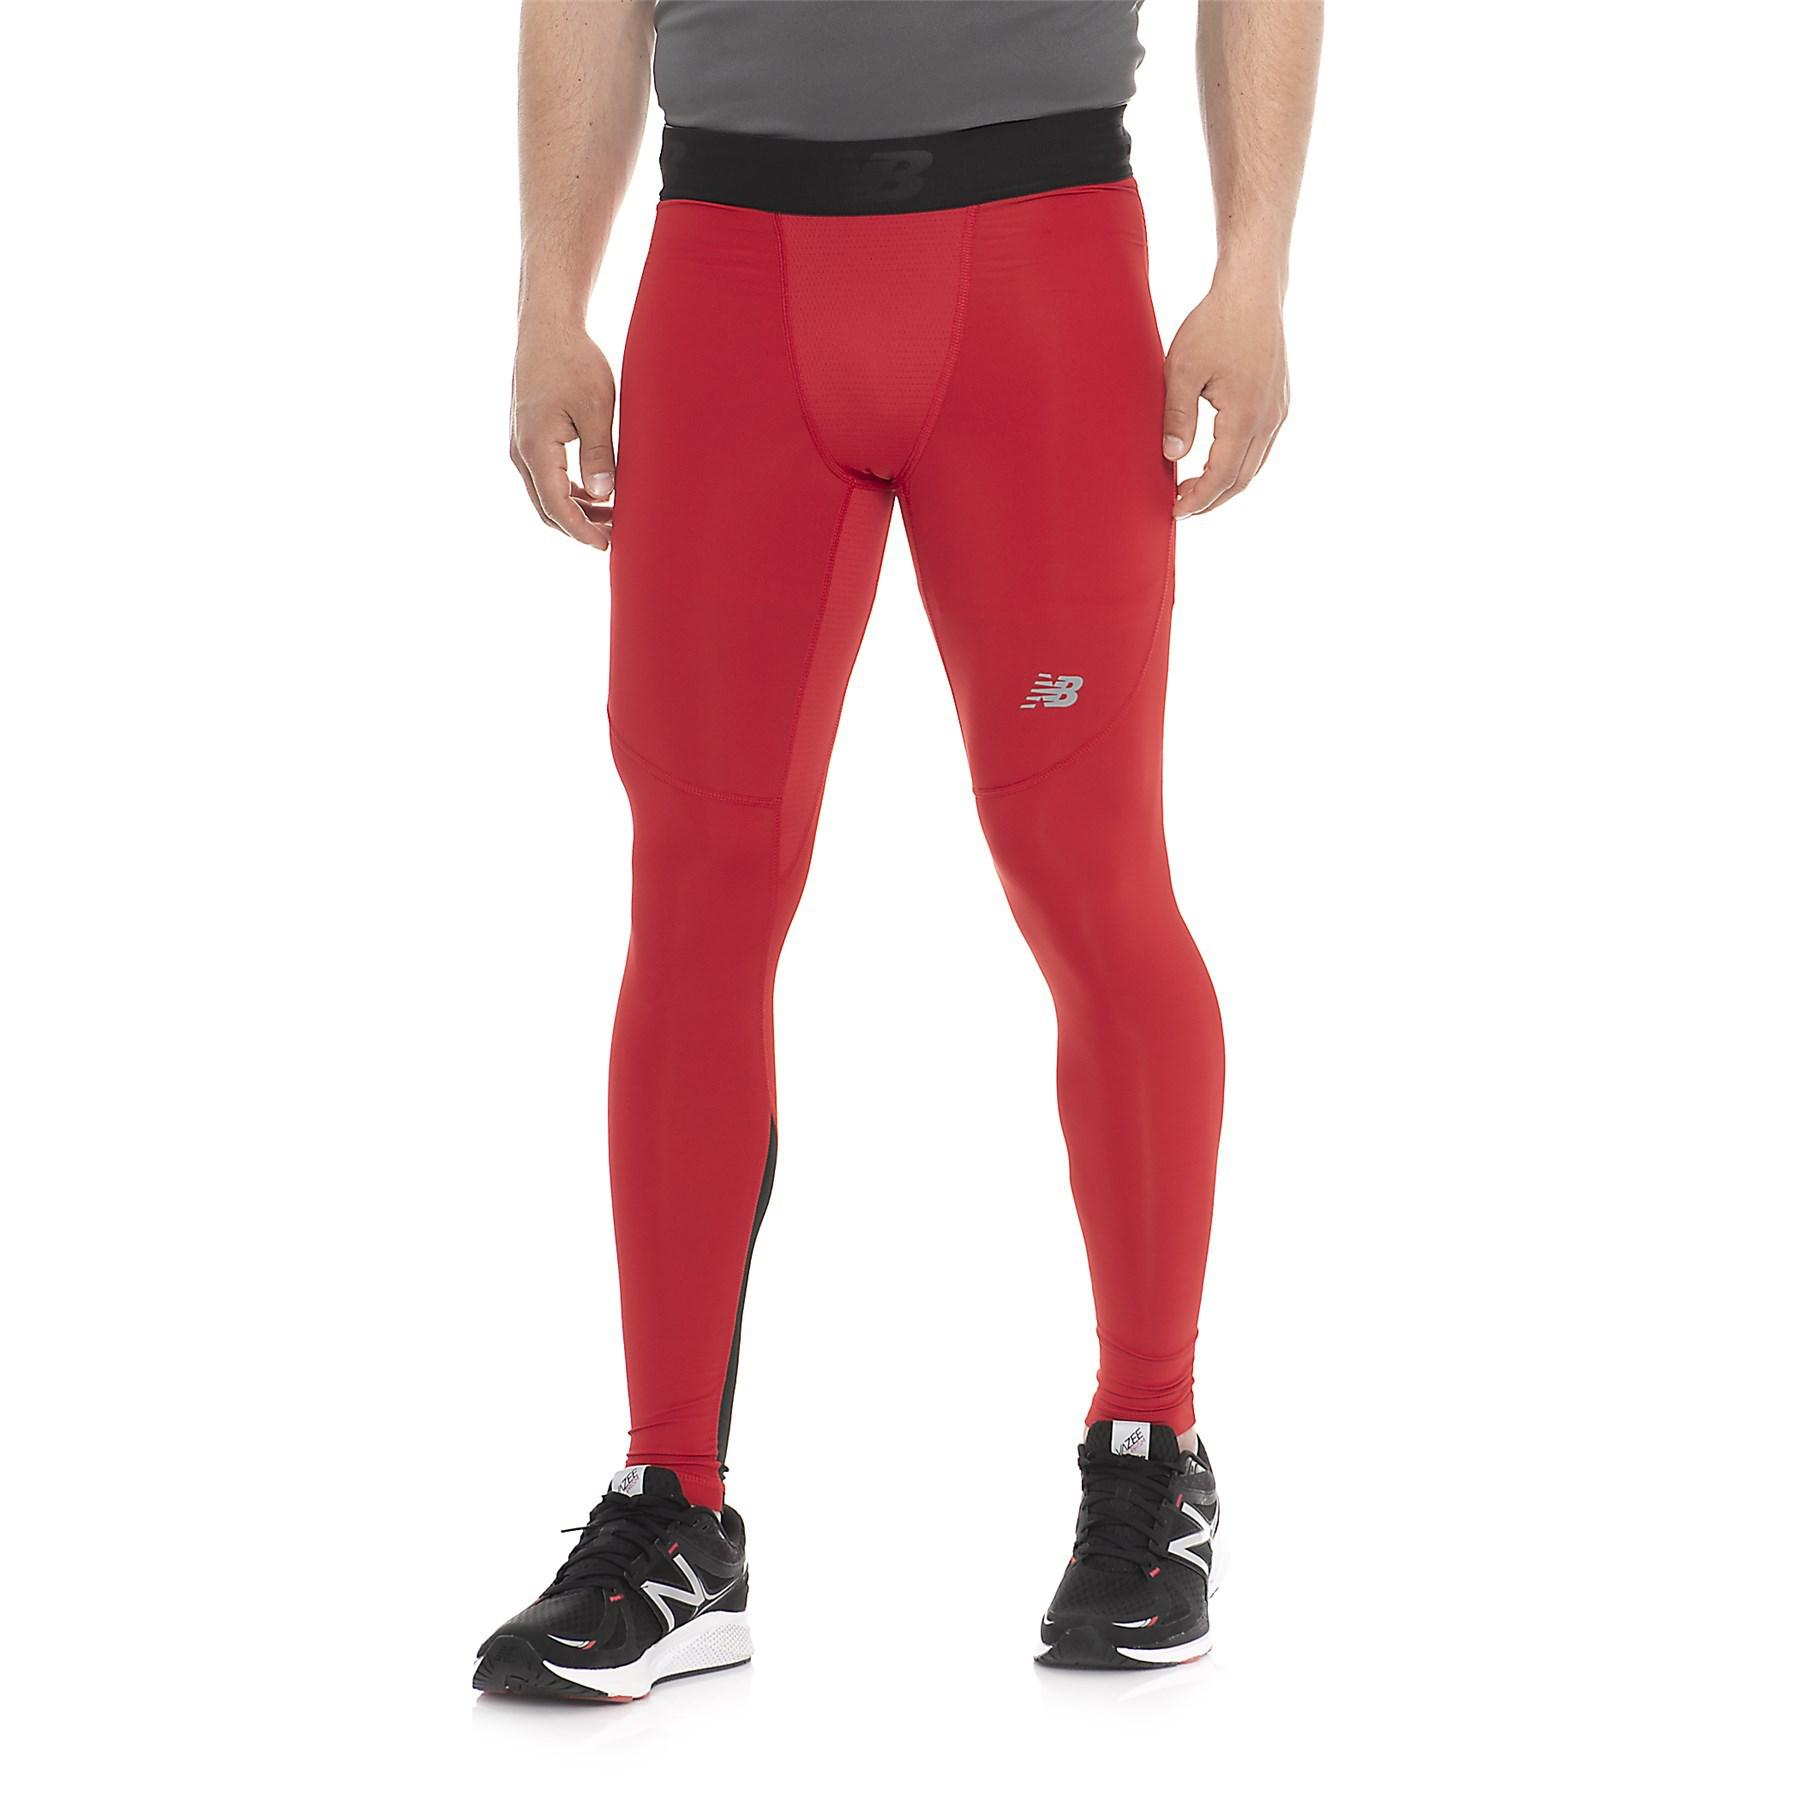 fc567c84aa29c New Balance Challenge Tights in Red for Men - Lyst